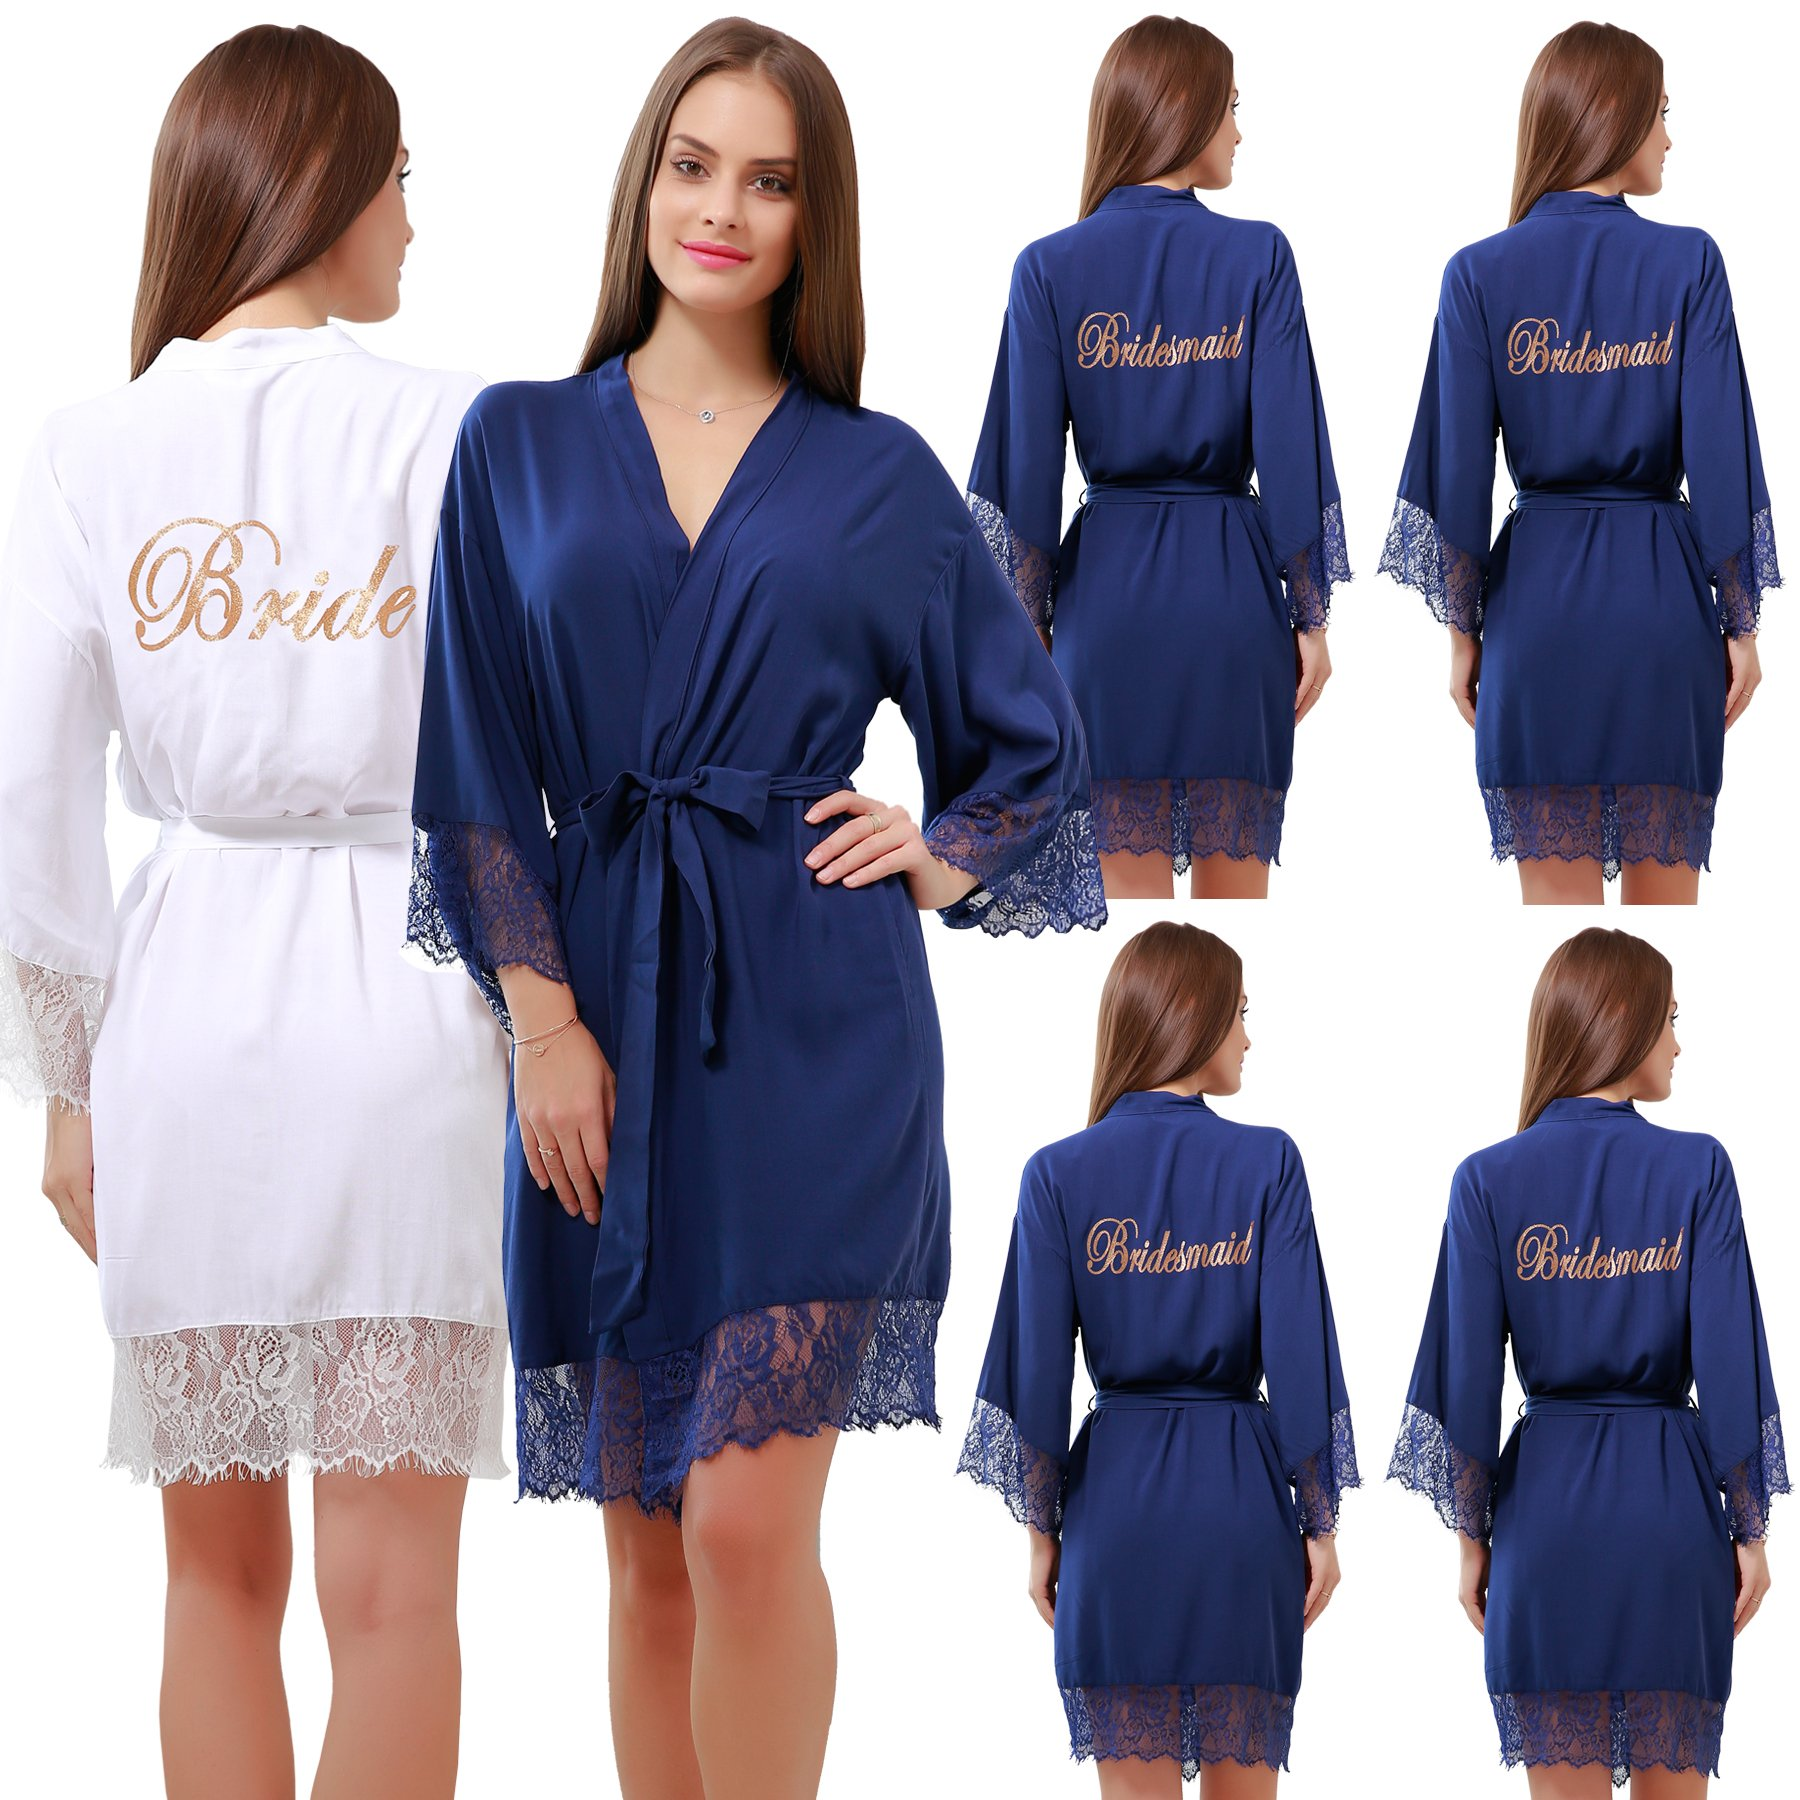 GoldOath Set Of 6 Women's Cotton Kimono Robes For Wedding Party Gifts For Bride and Bridesmaid With Lace Trim